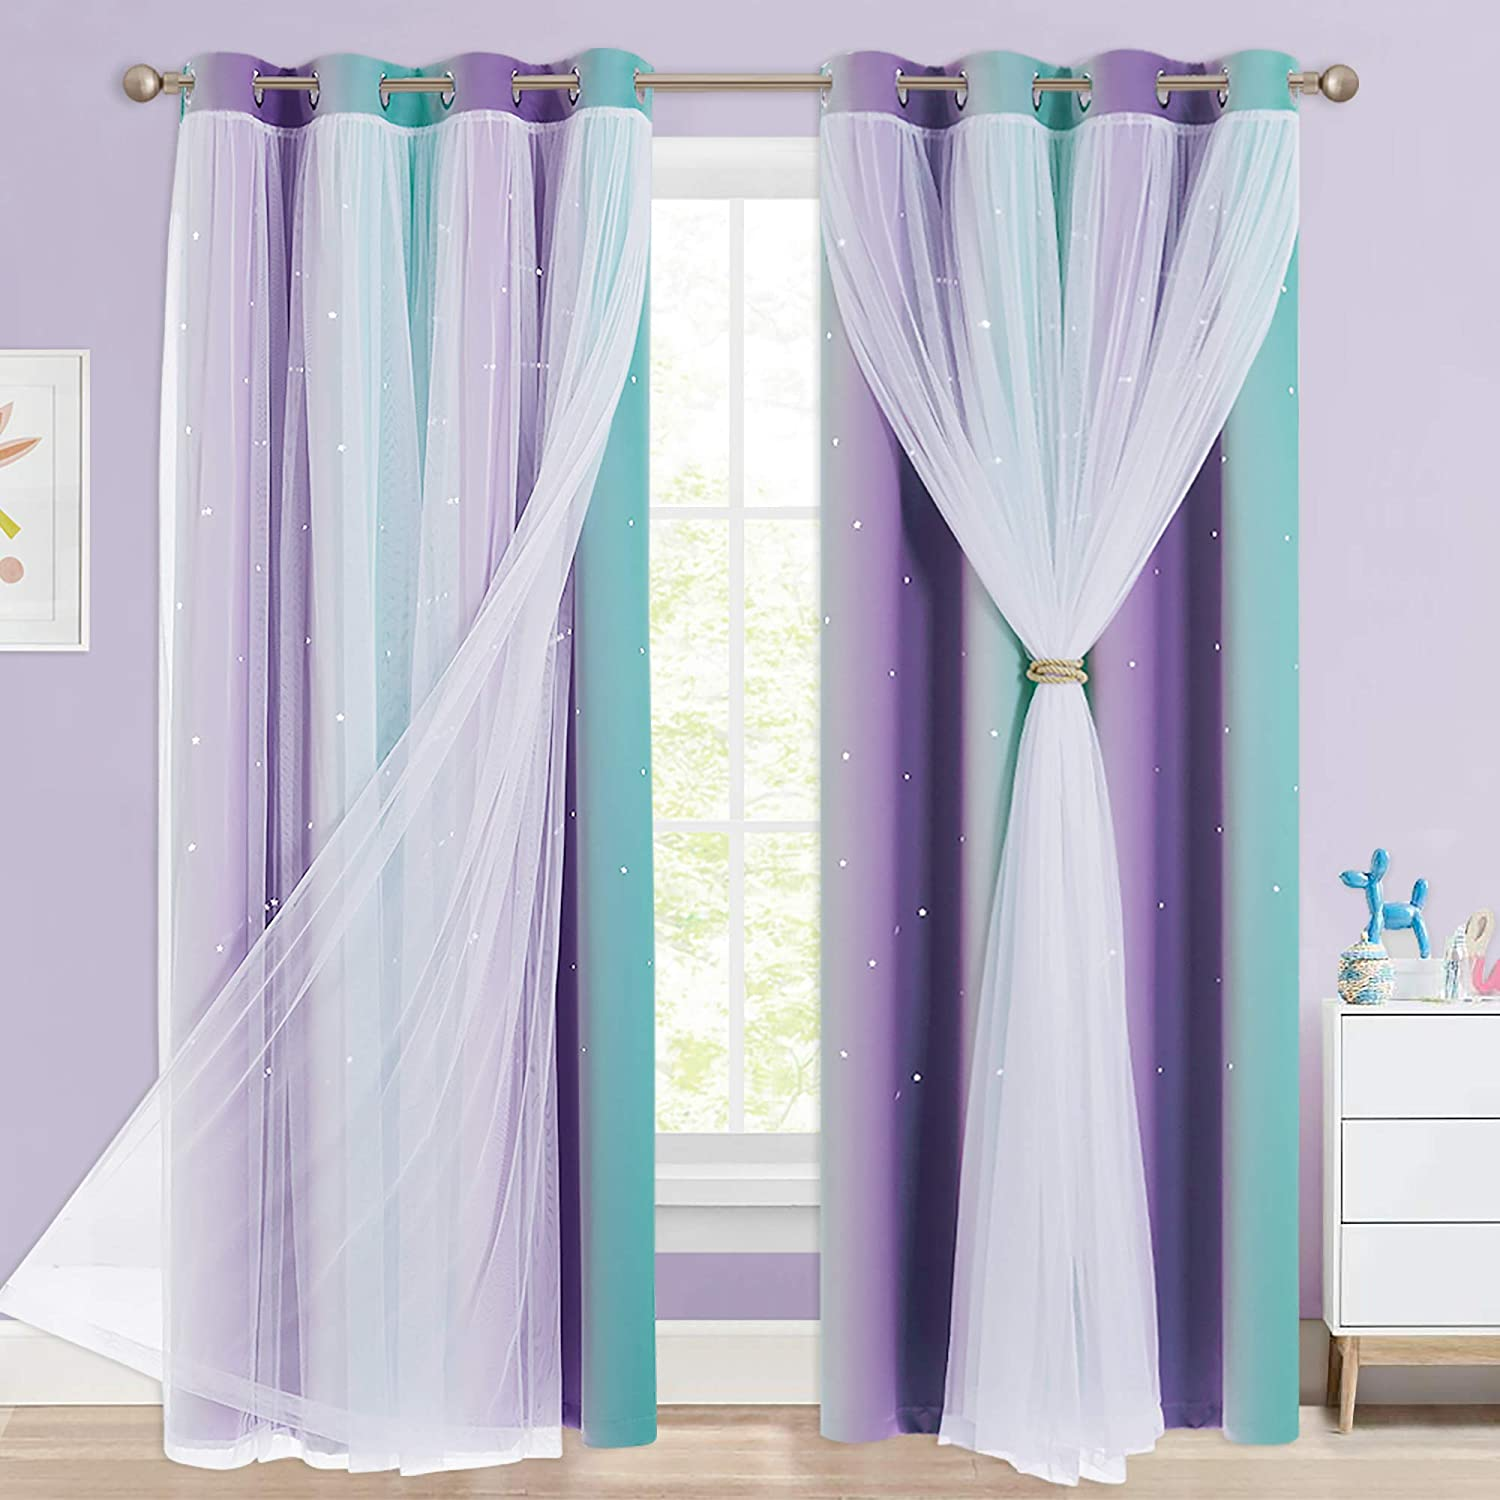 NICETOWN Star Curtains for Girls Bedroom, Mermaid Theme Nursery Decor for Girls, Kids Room/Living Room Mix & Match Sheer Attached to Star Cut Curtain Panels (Teal & Purple, 2 Pieces = W104 x L95)